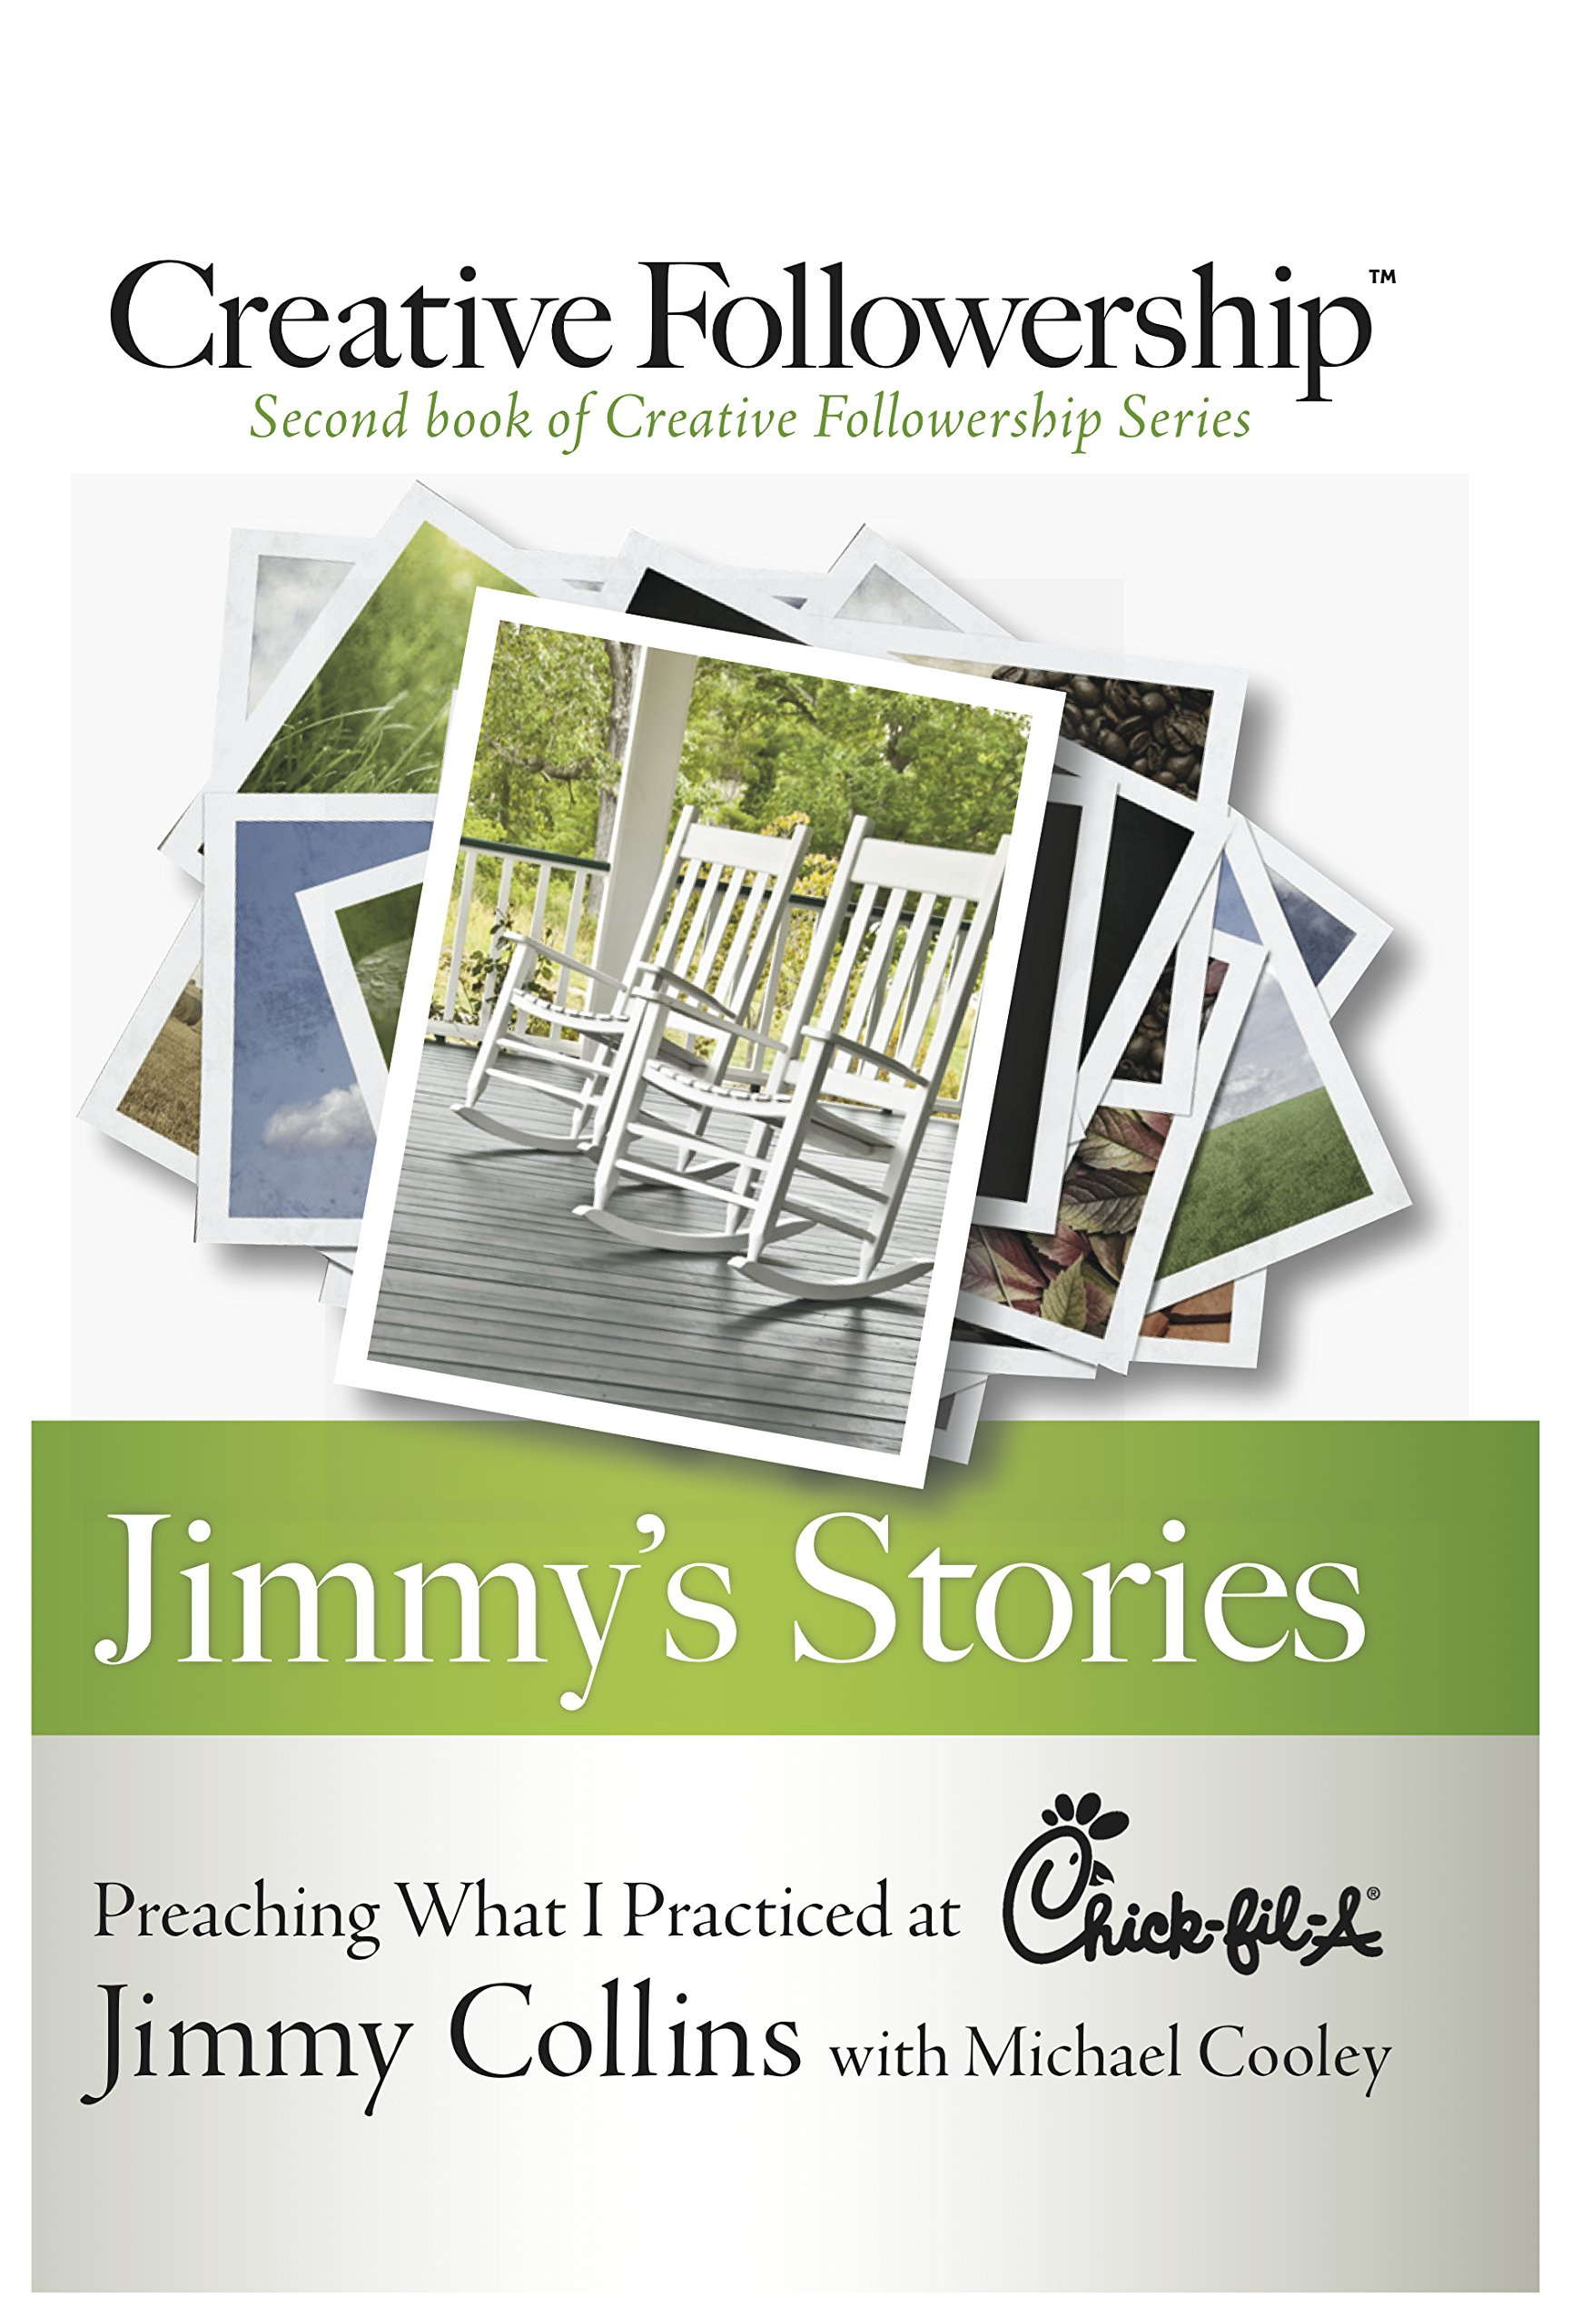 jimmy s stories preaching what i practiced at chick fil a jimmy s stories preaching what i practiced at chick fil a creative followership jimmy collins michael cooley 9781929619665 com books